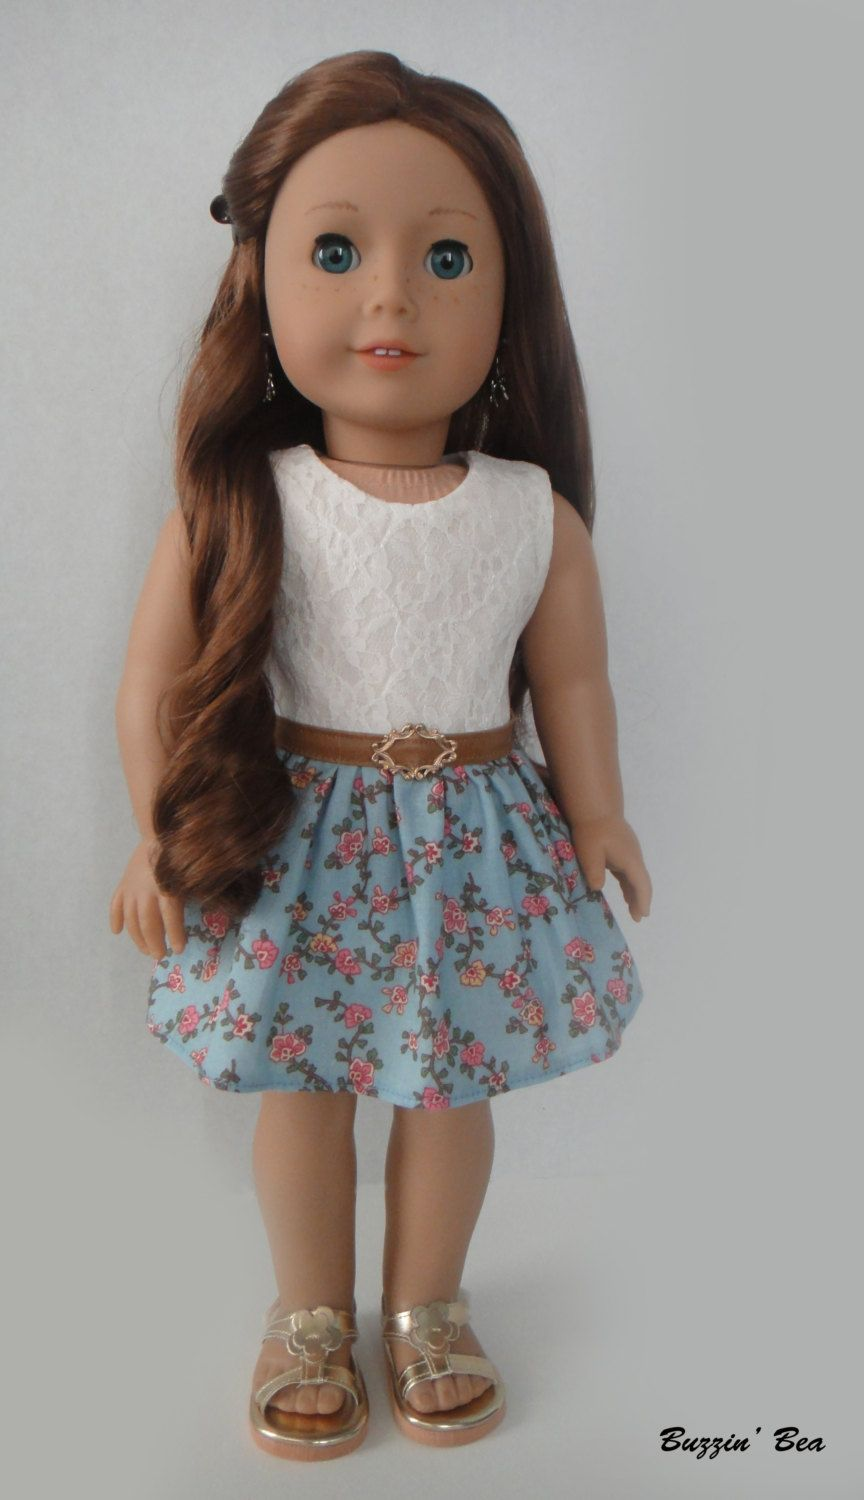 Vintage-Inspired Lace Floral Dress with Belt - American Girl Doll ...